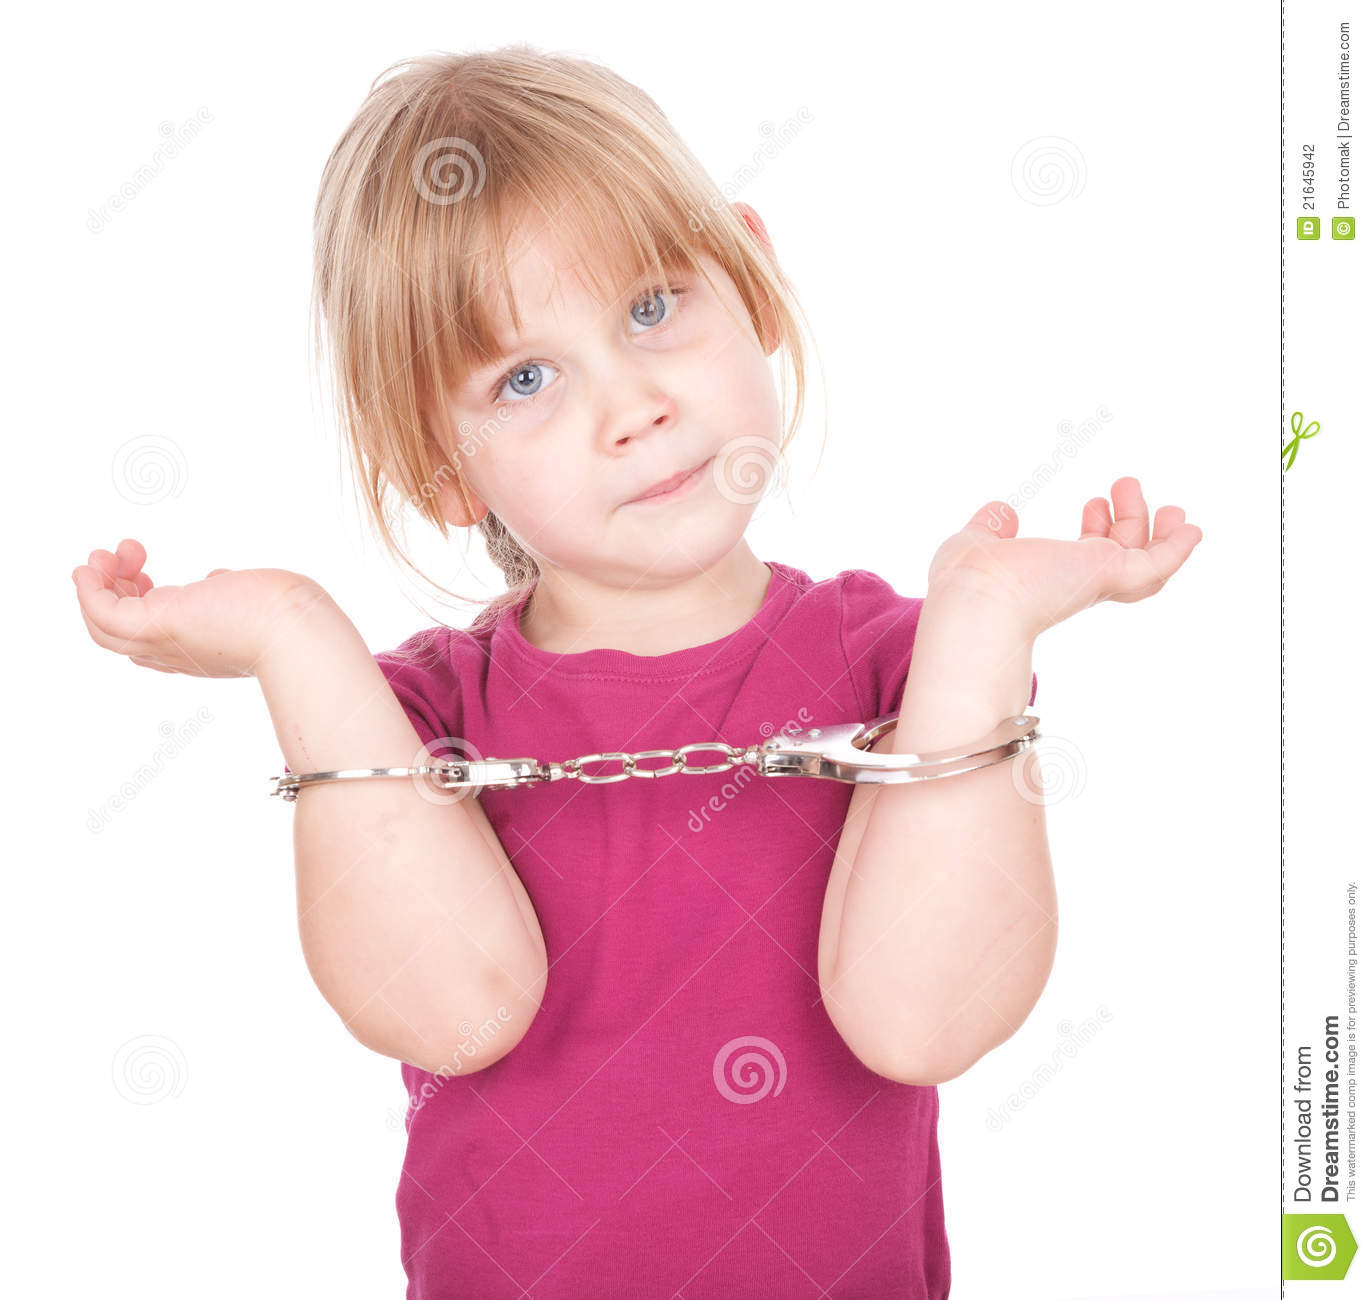 Sorry, Little girls in handcuffs was specially